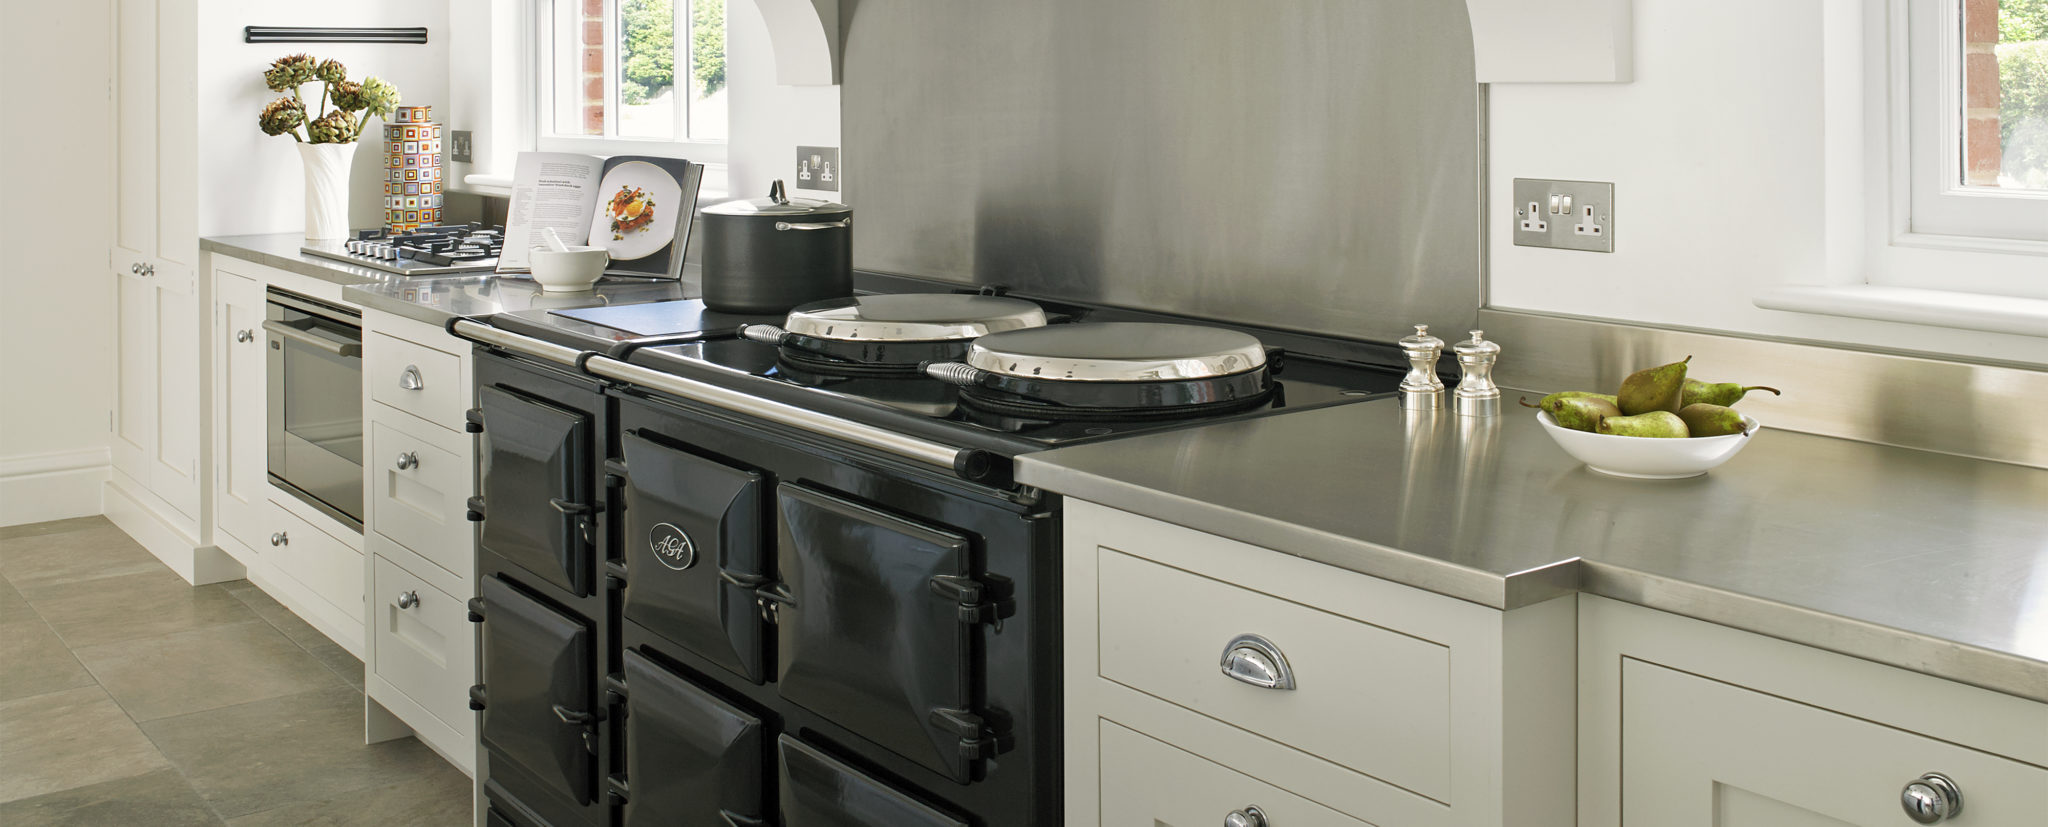 Country range black AGA - white country kitchen design with stainless steel worktops and cup handles